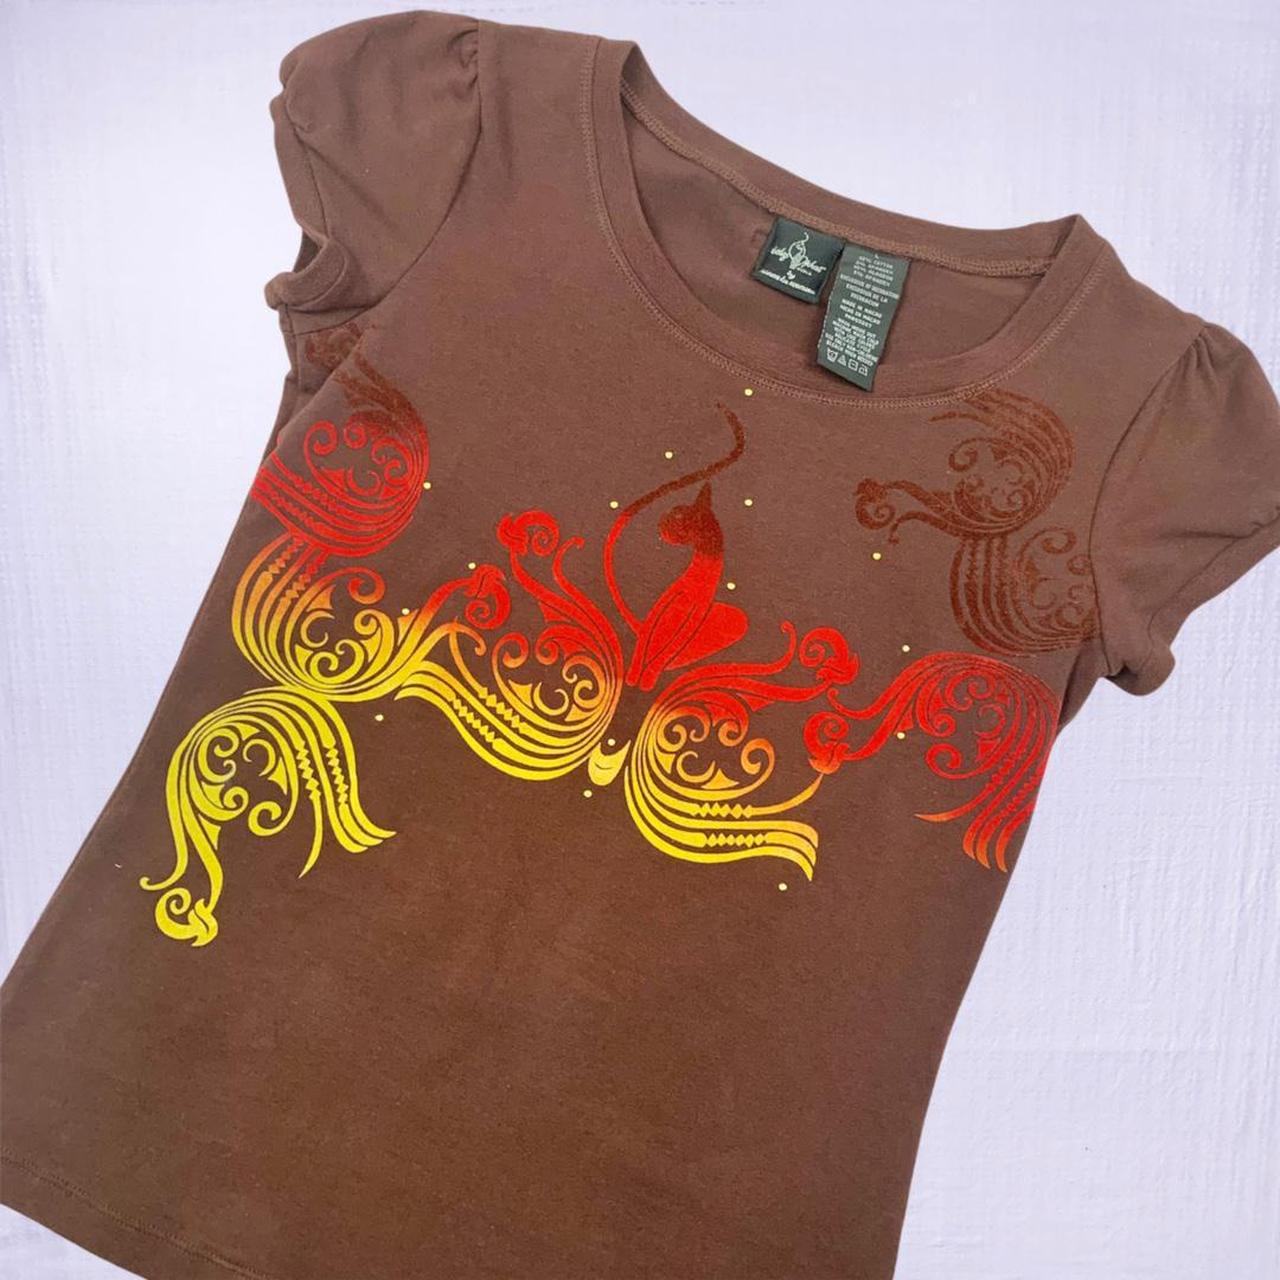 Product Image 1 - Baby Phat Brown Baby Tee  This